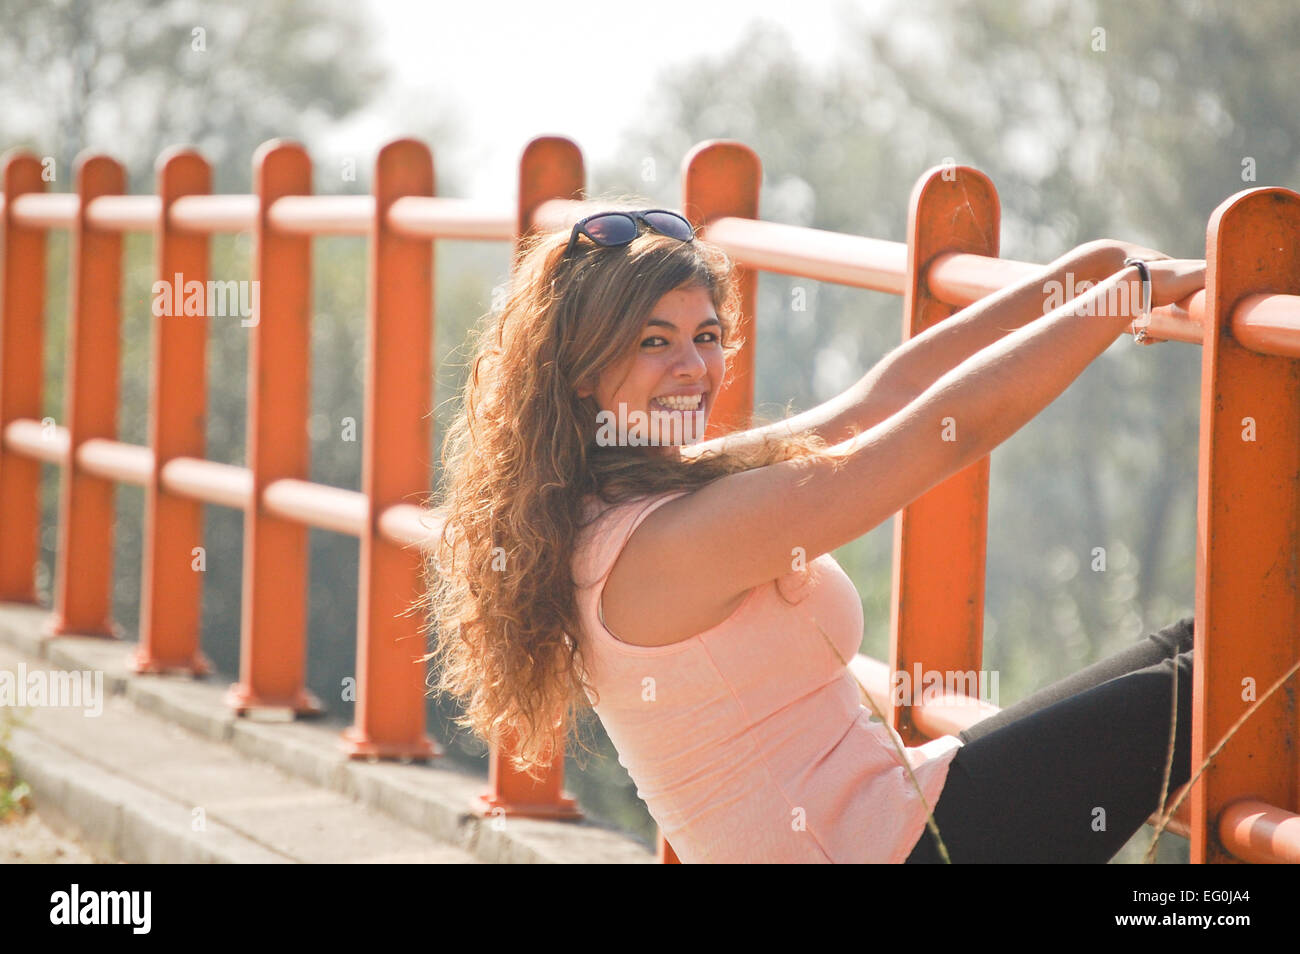 Long haired woman leaning on orange barrier and smiling to camera - Stock Image